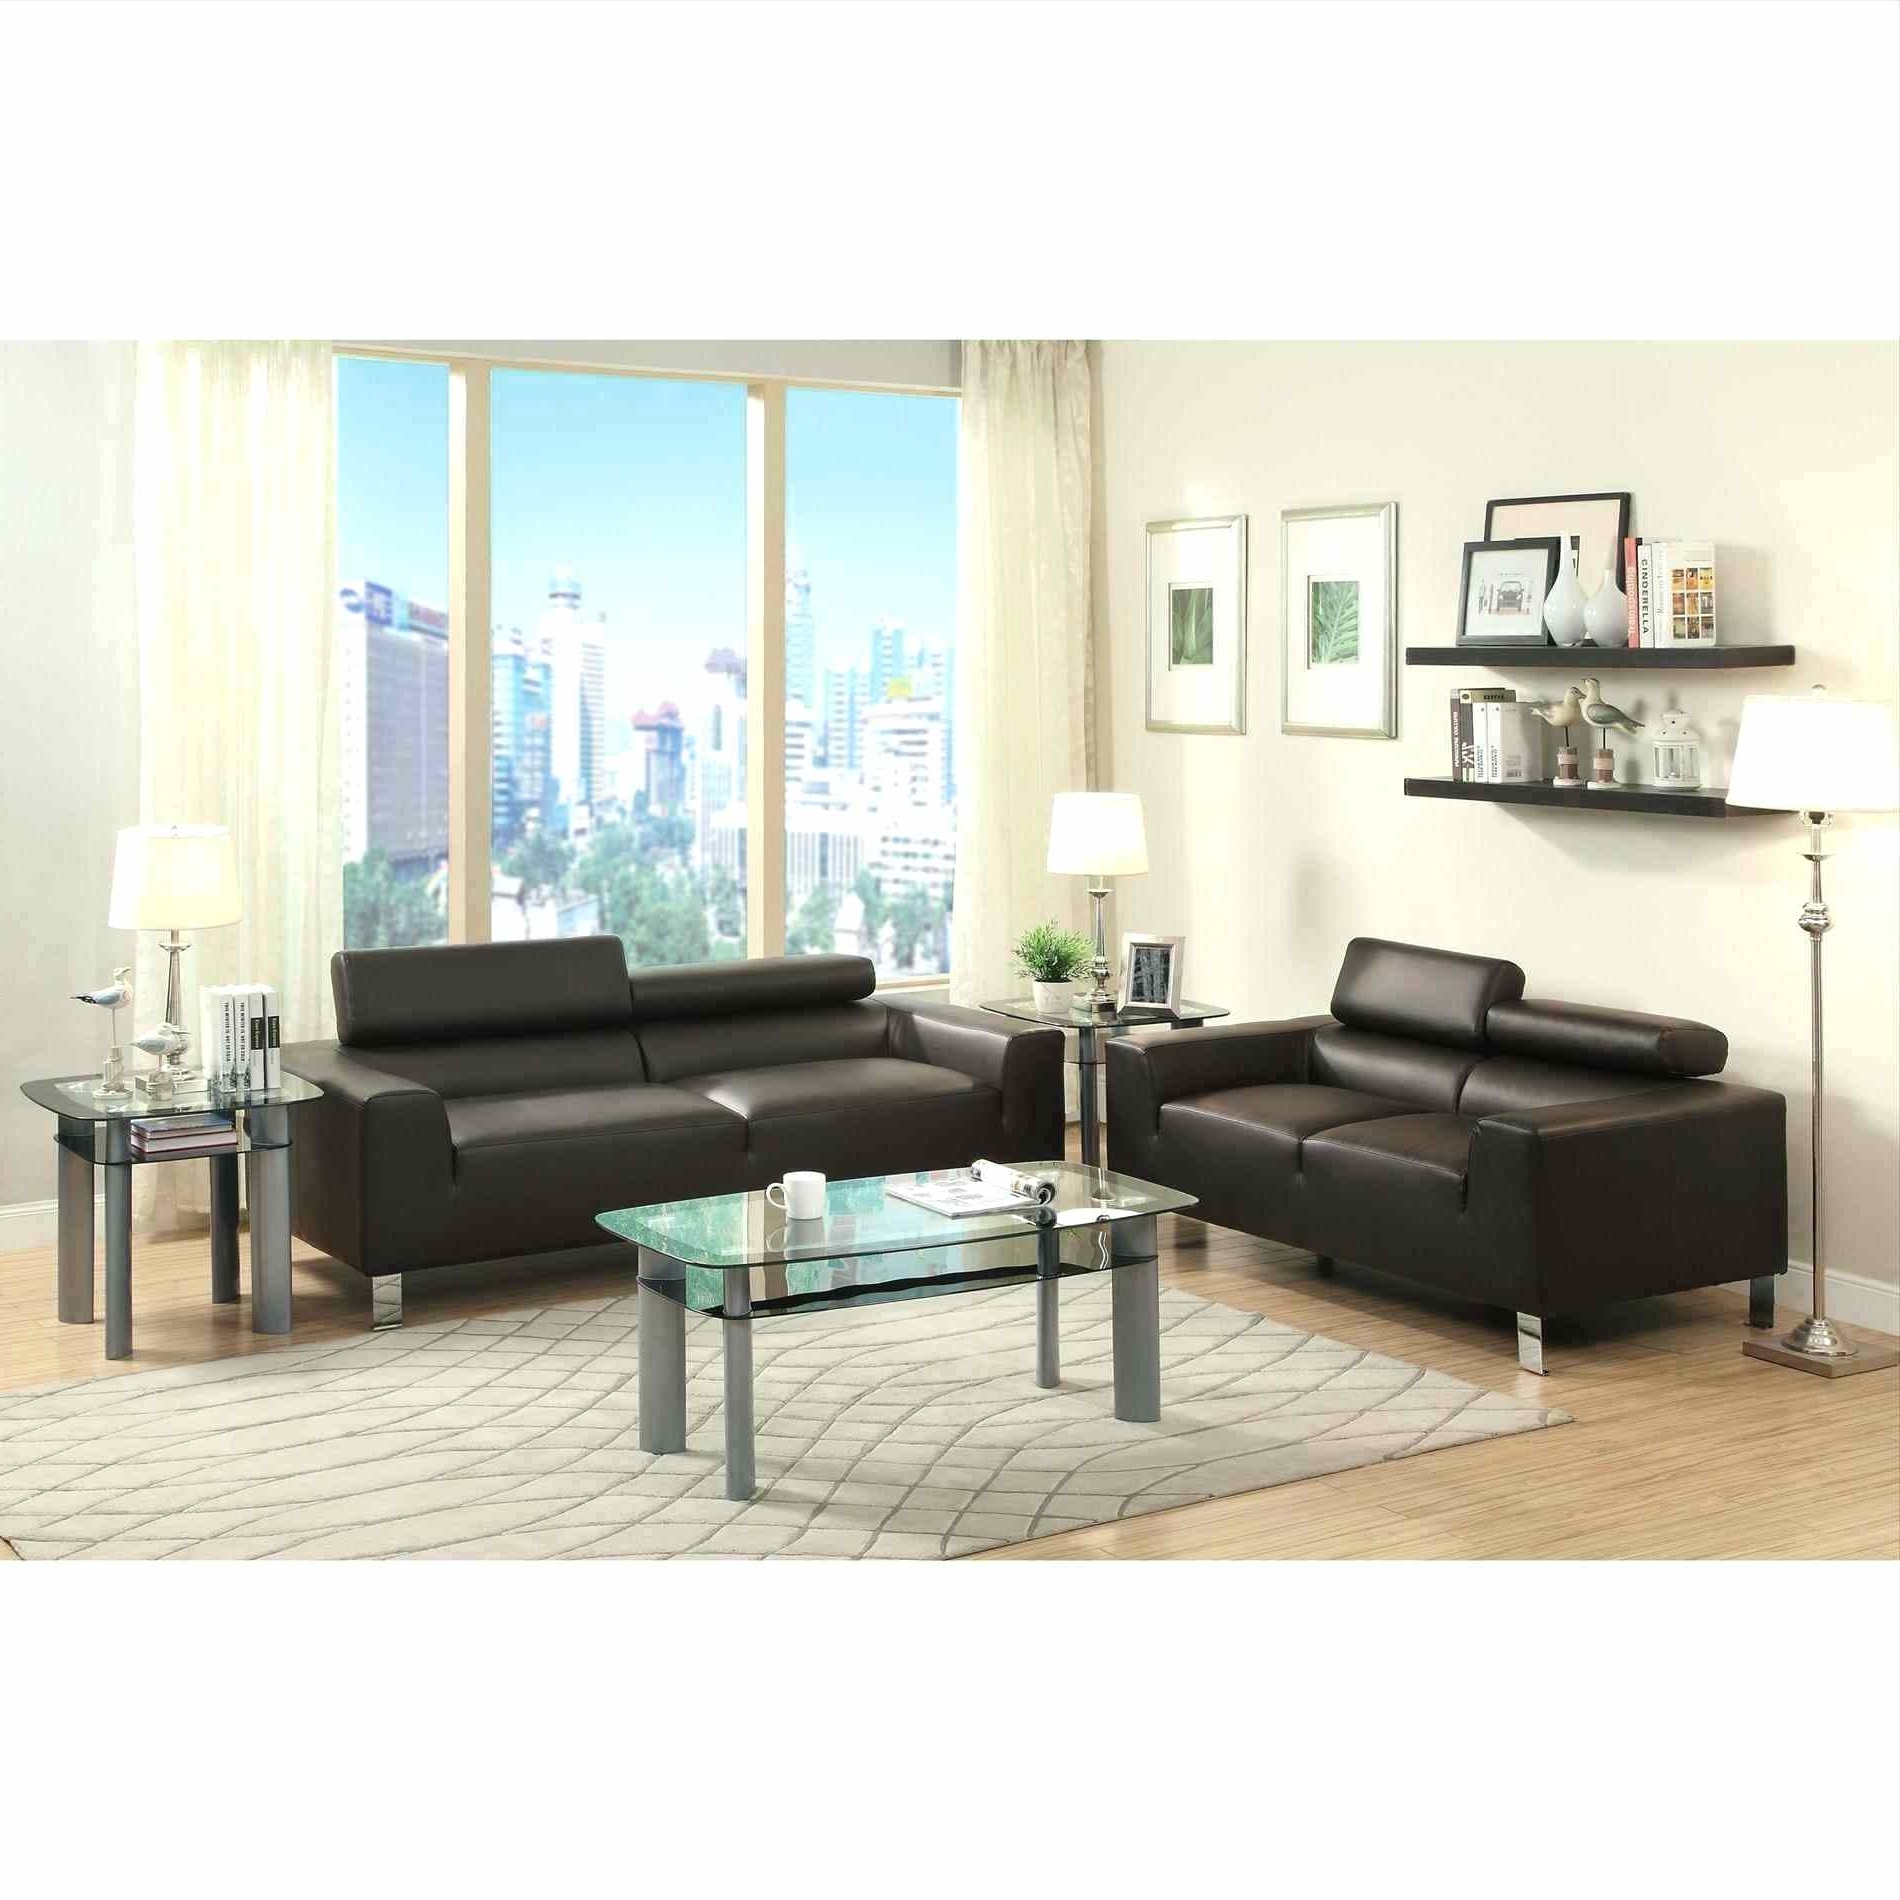 Cur Modern Furniture Woodsville Nh Design Jobs Or Lovely Sectional Inside Sofas View